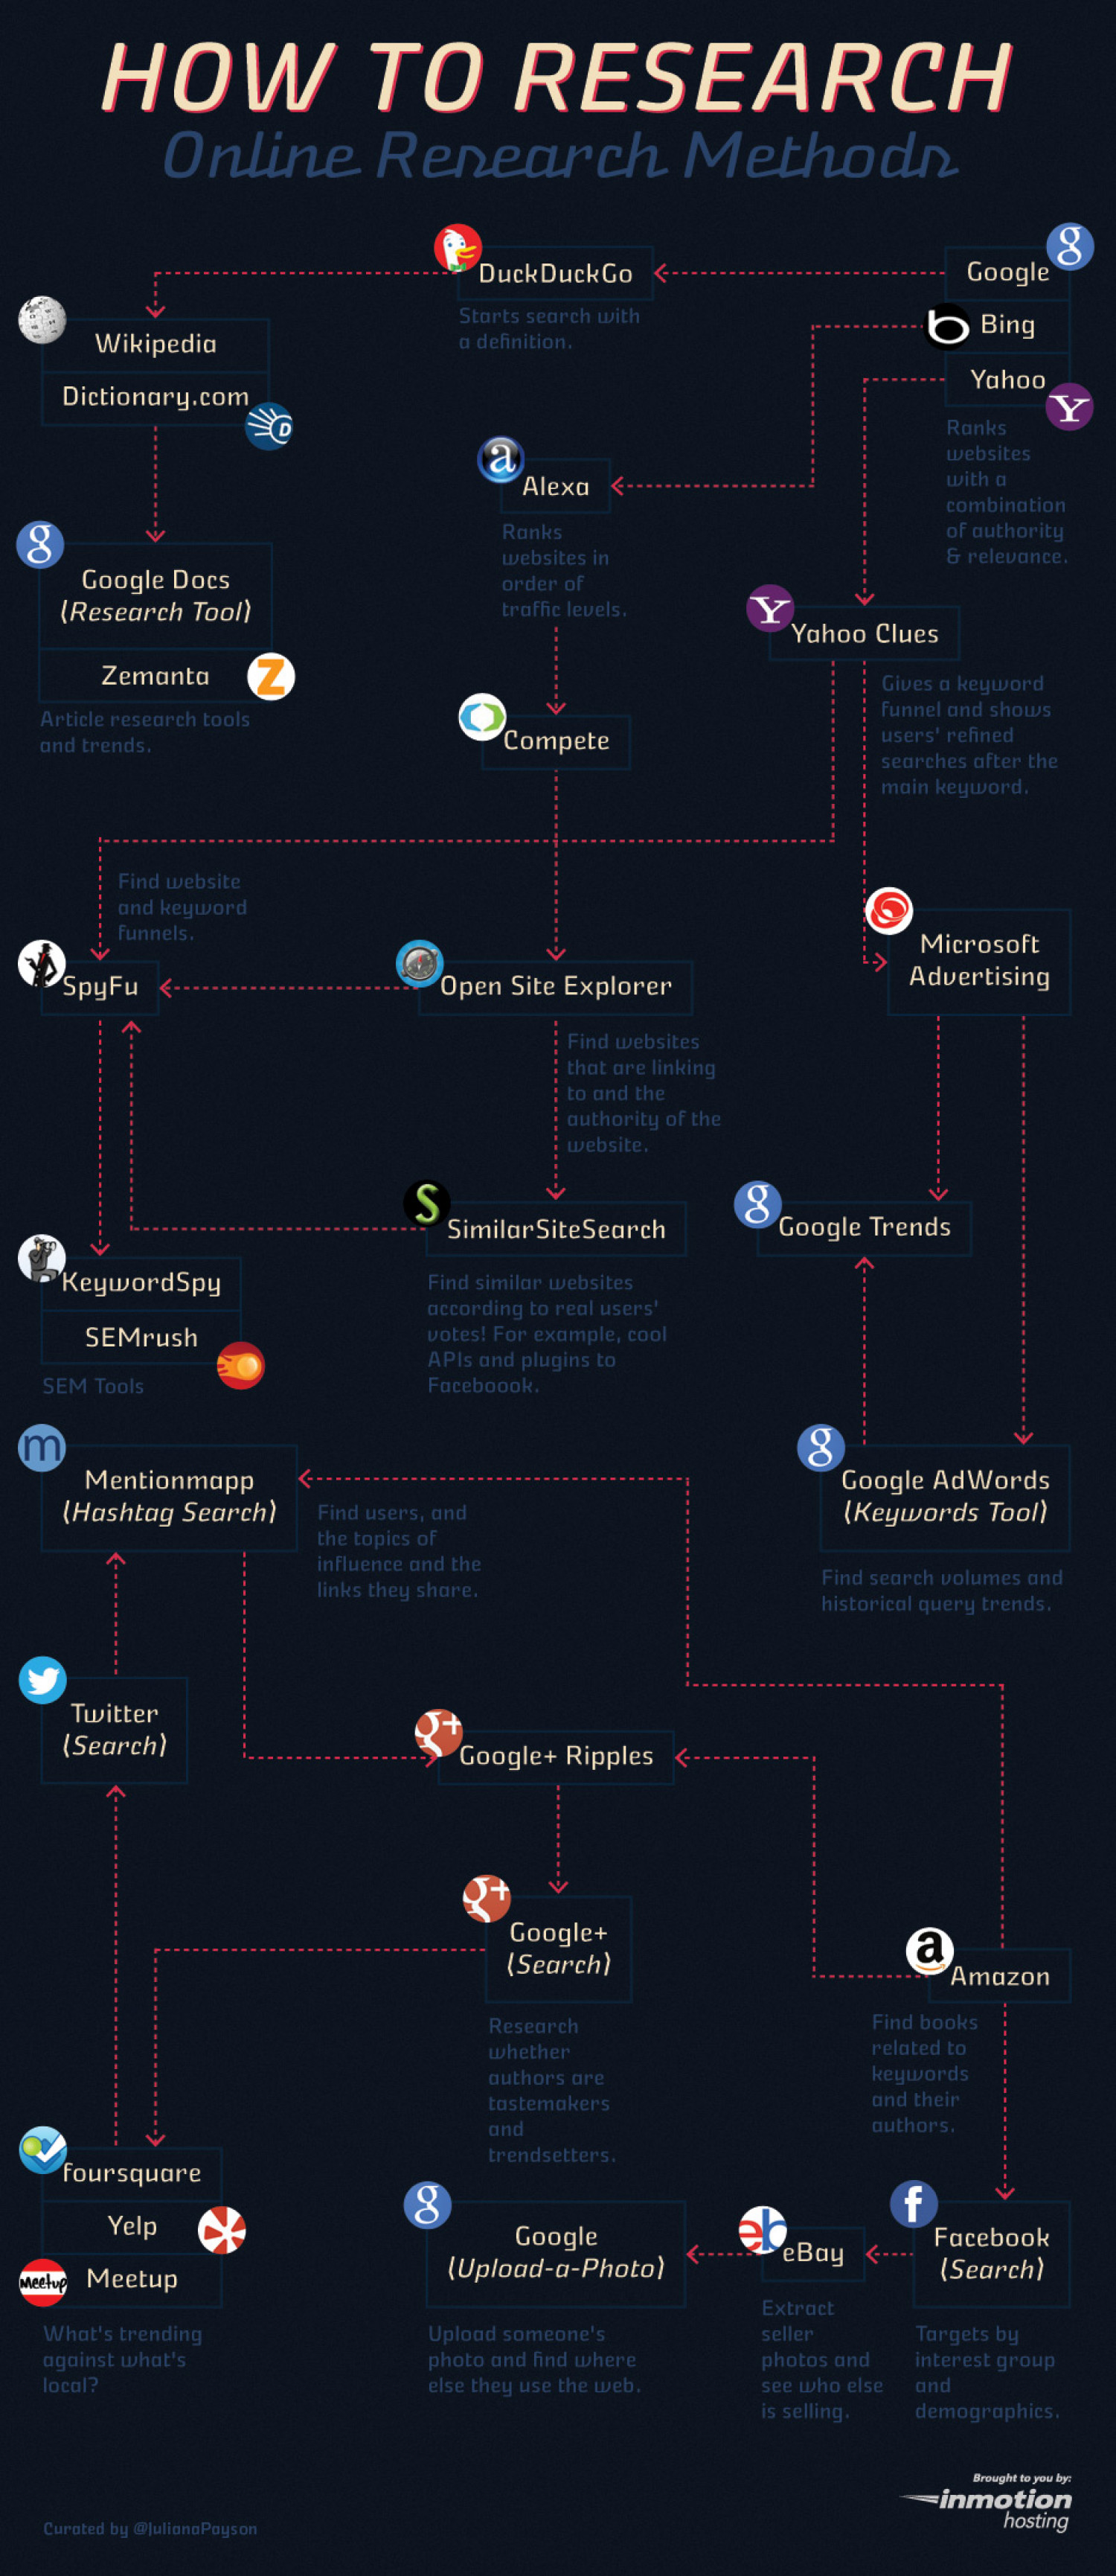 How to Research Infographic